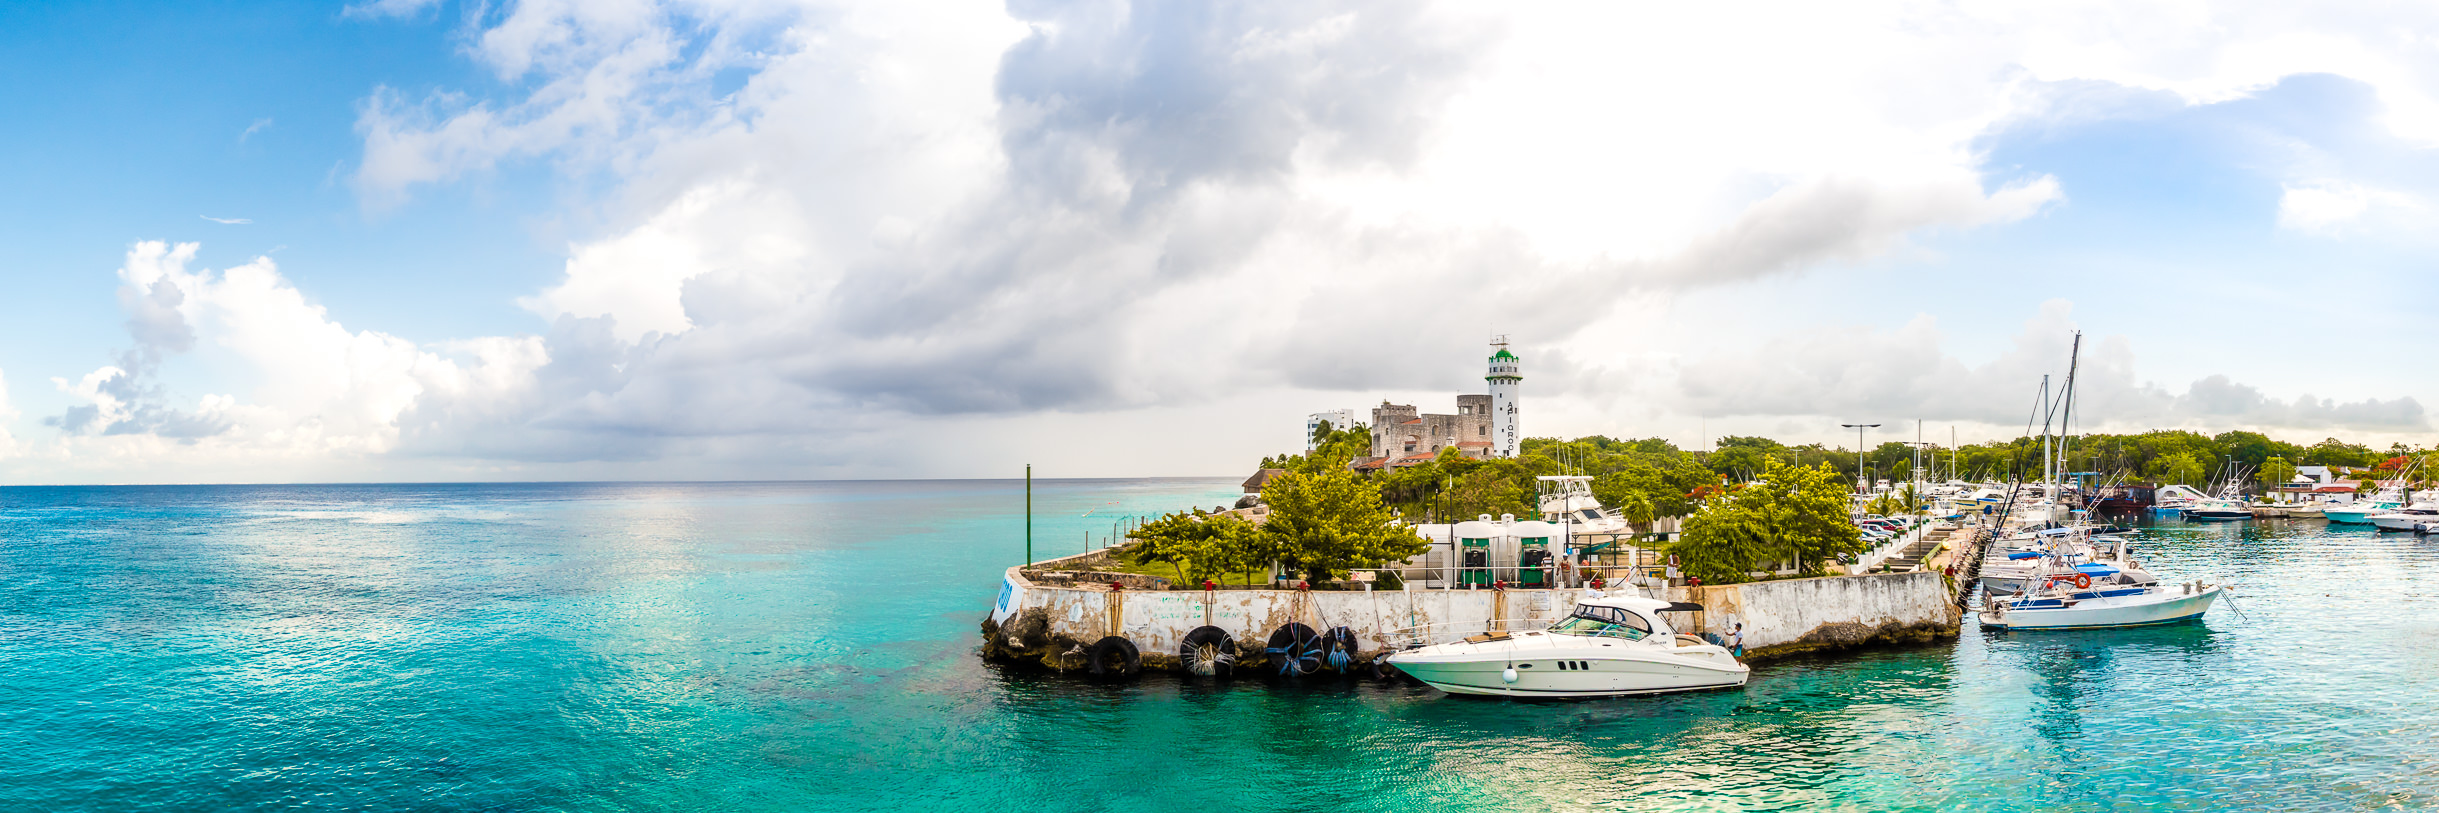 A small marina at the northern end of San Miguel de Cozumel, Mexico.